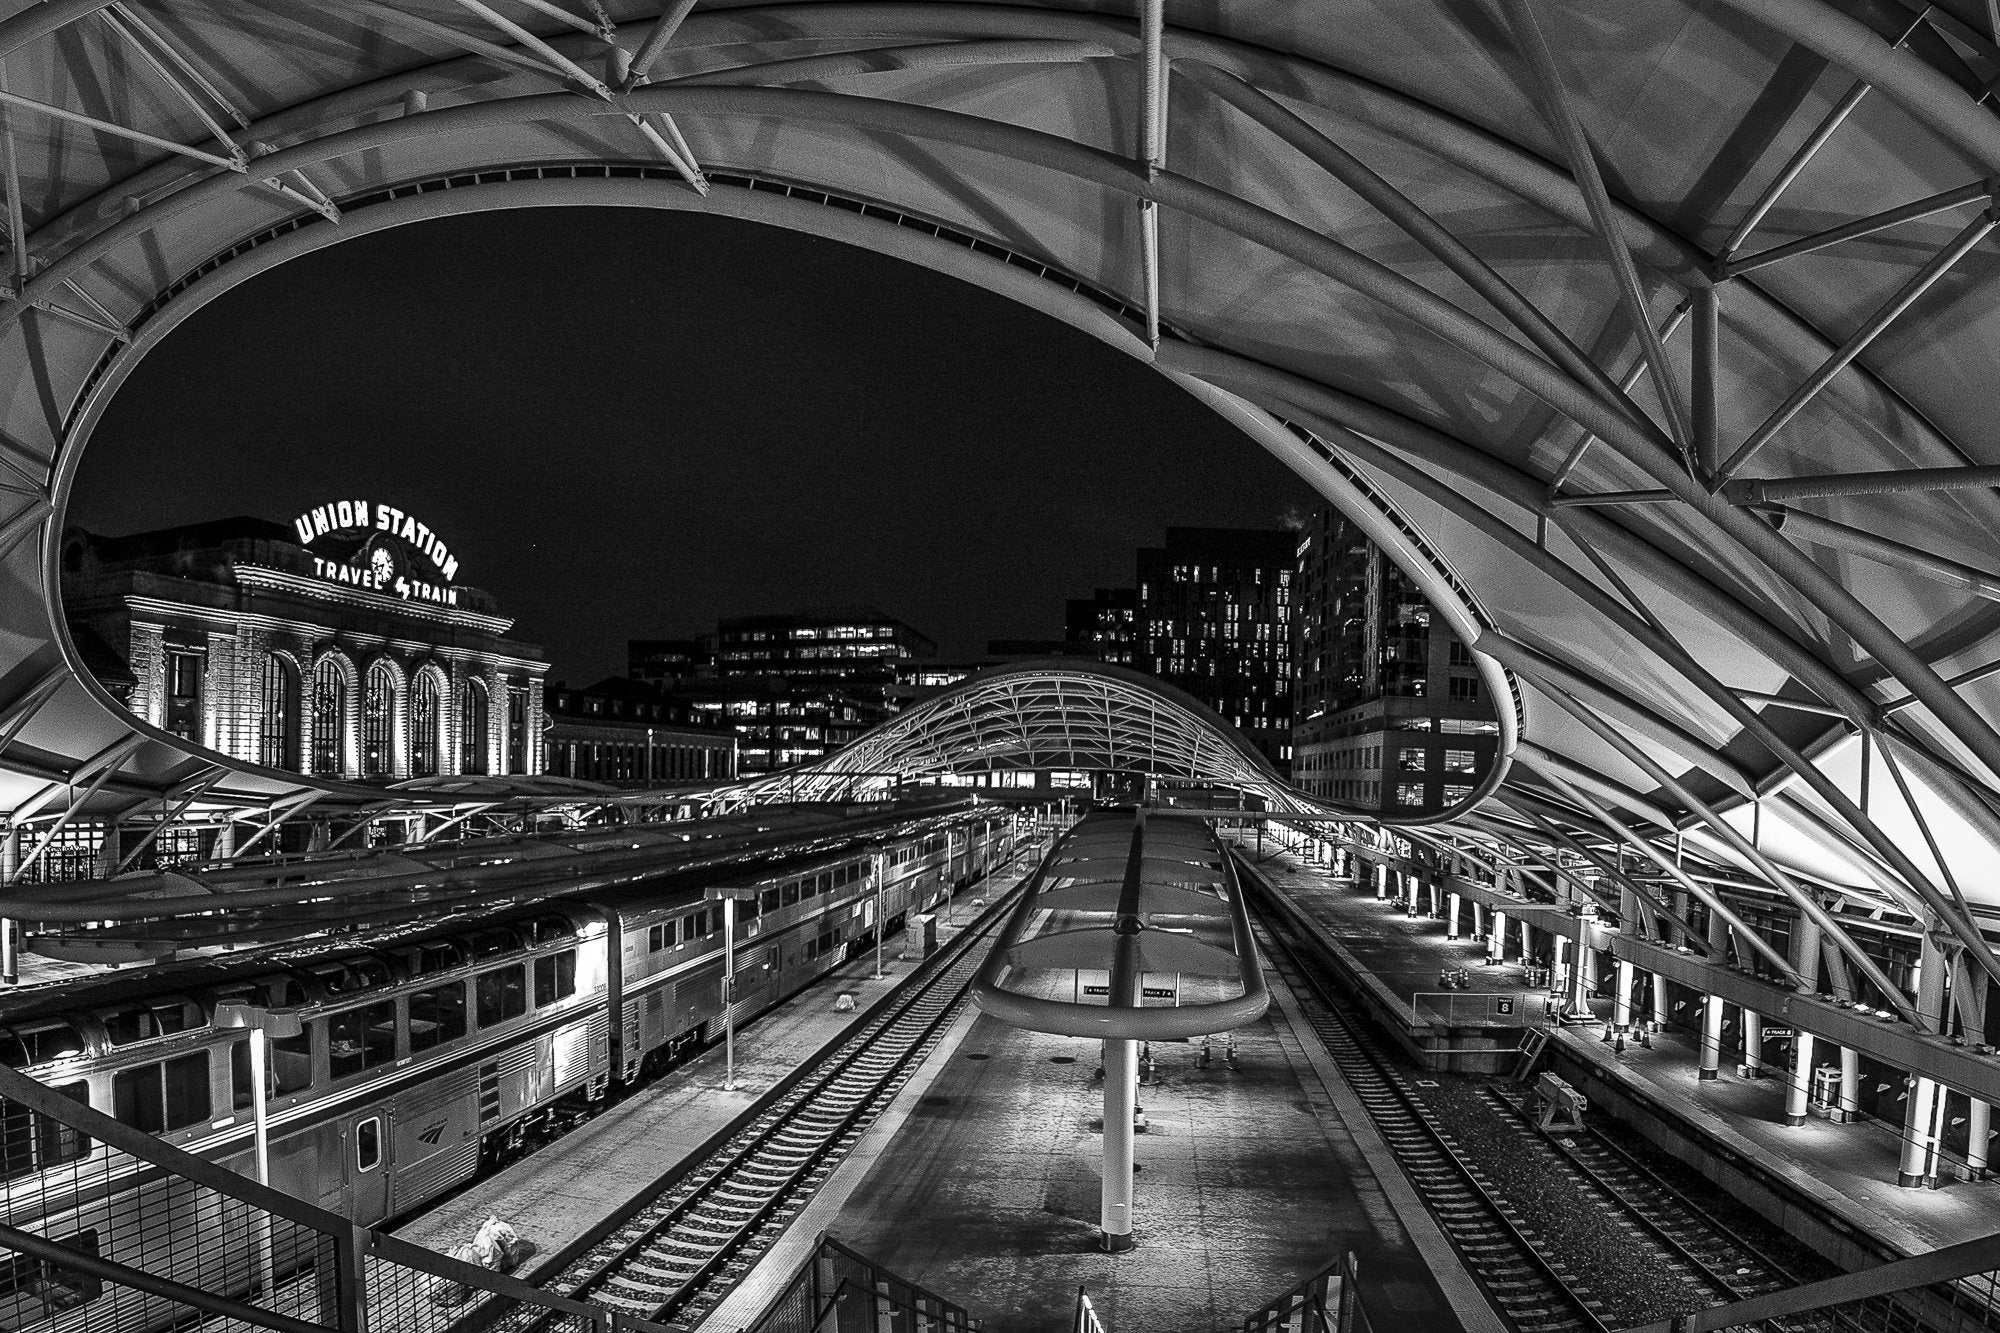 Union Station from the Tracks